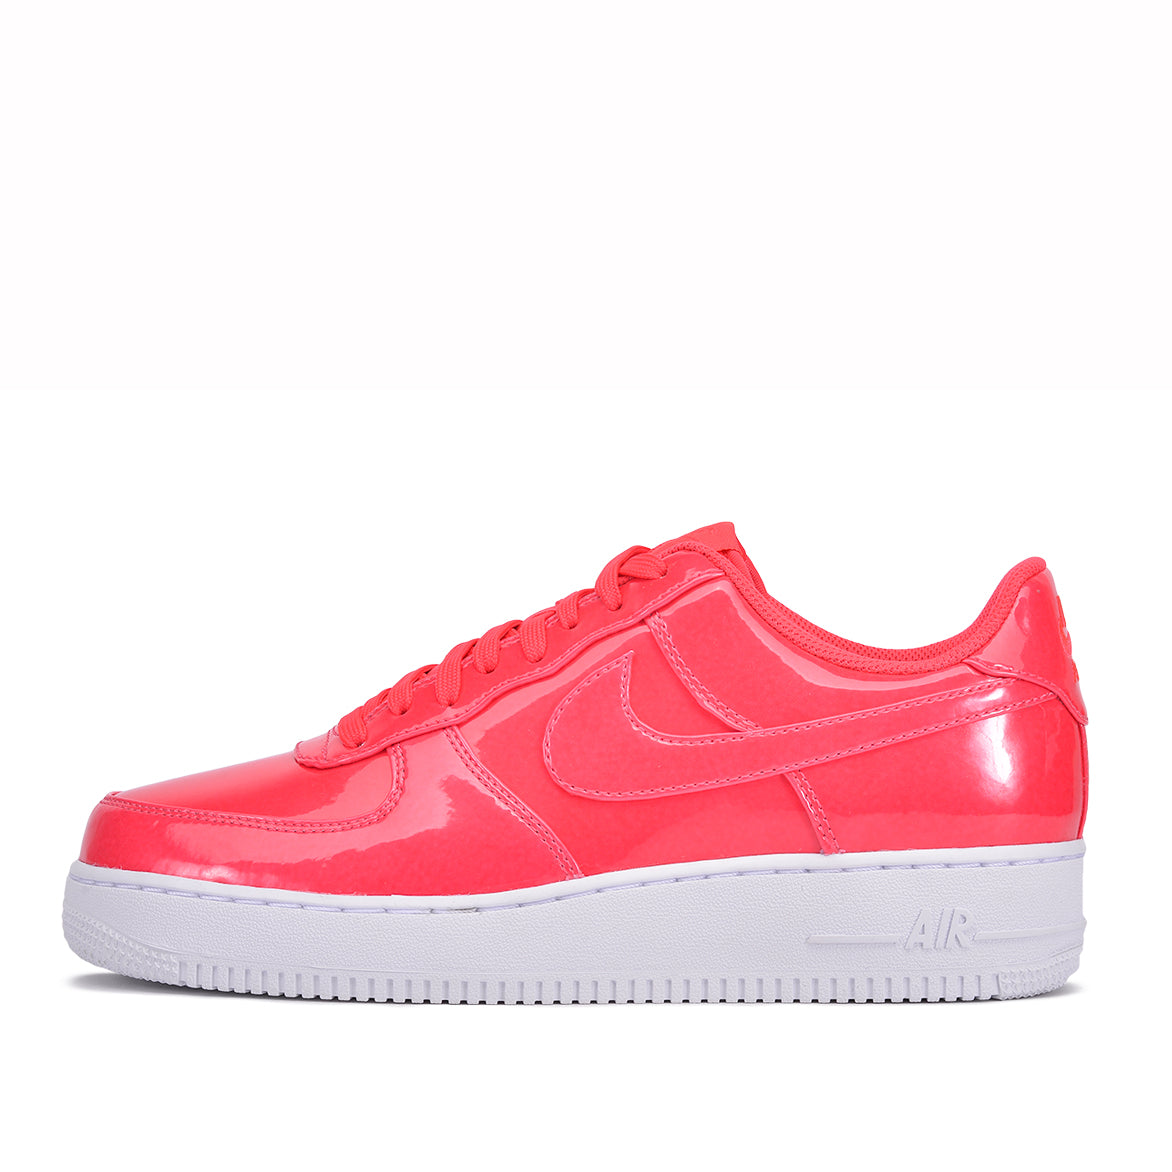 AIR FORCE 1 `07 LV8 UV SIREN RED